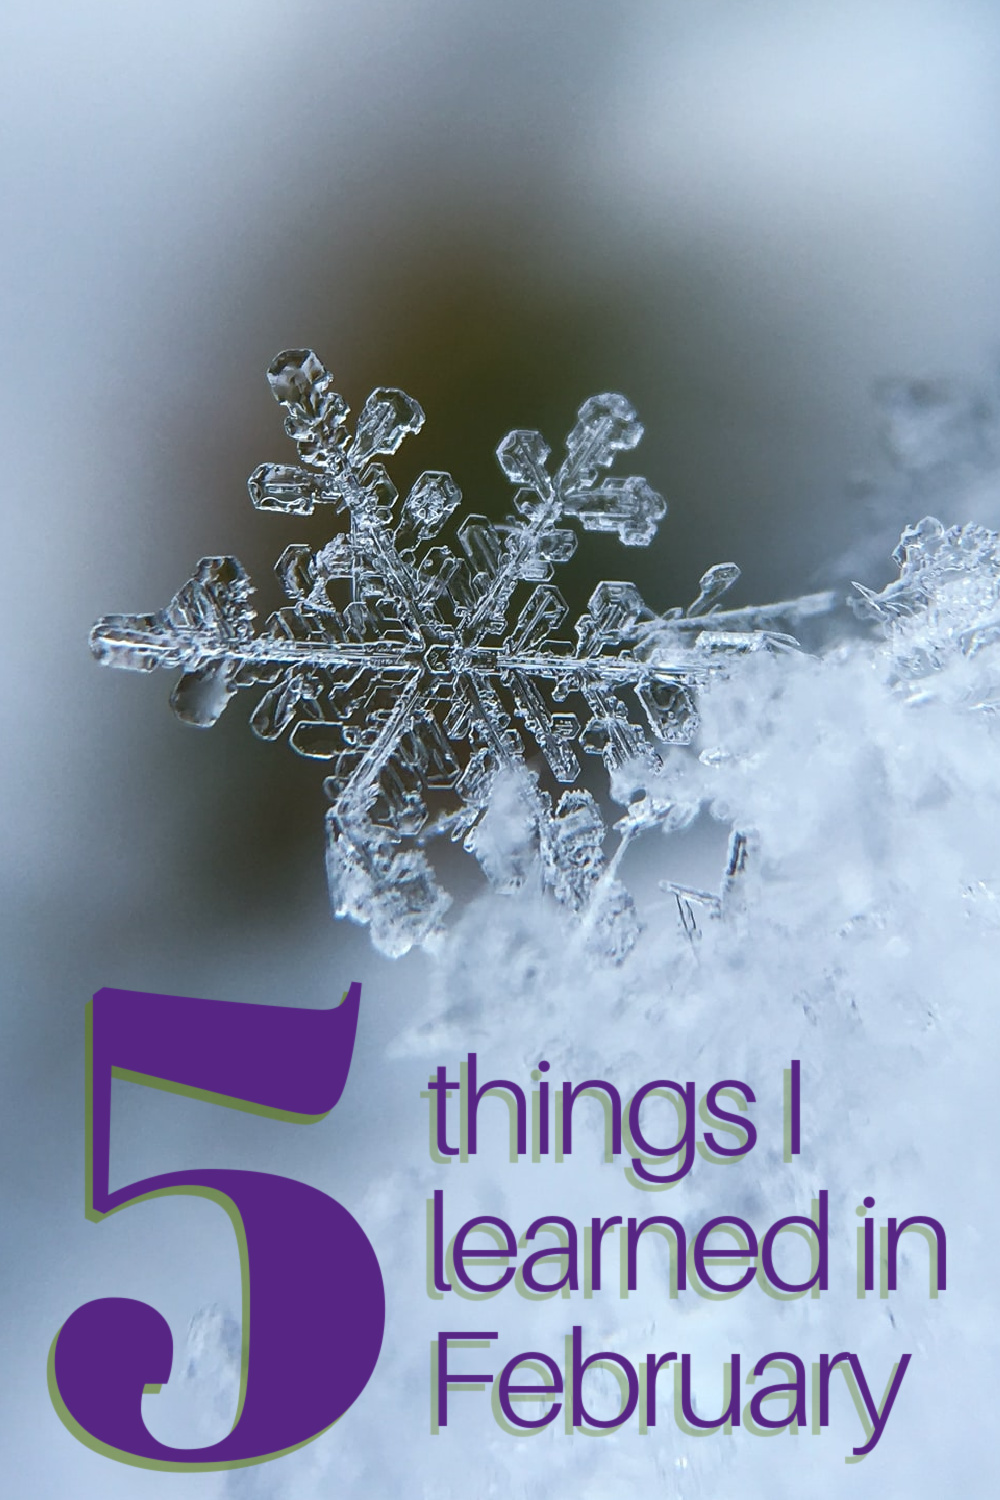 February was cold and snowy, but not nearly so bad as in many places. It was a month to be grateful for what we have. Here are 5 things I learned in the month of February.